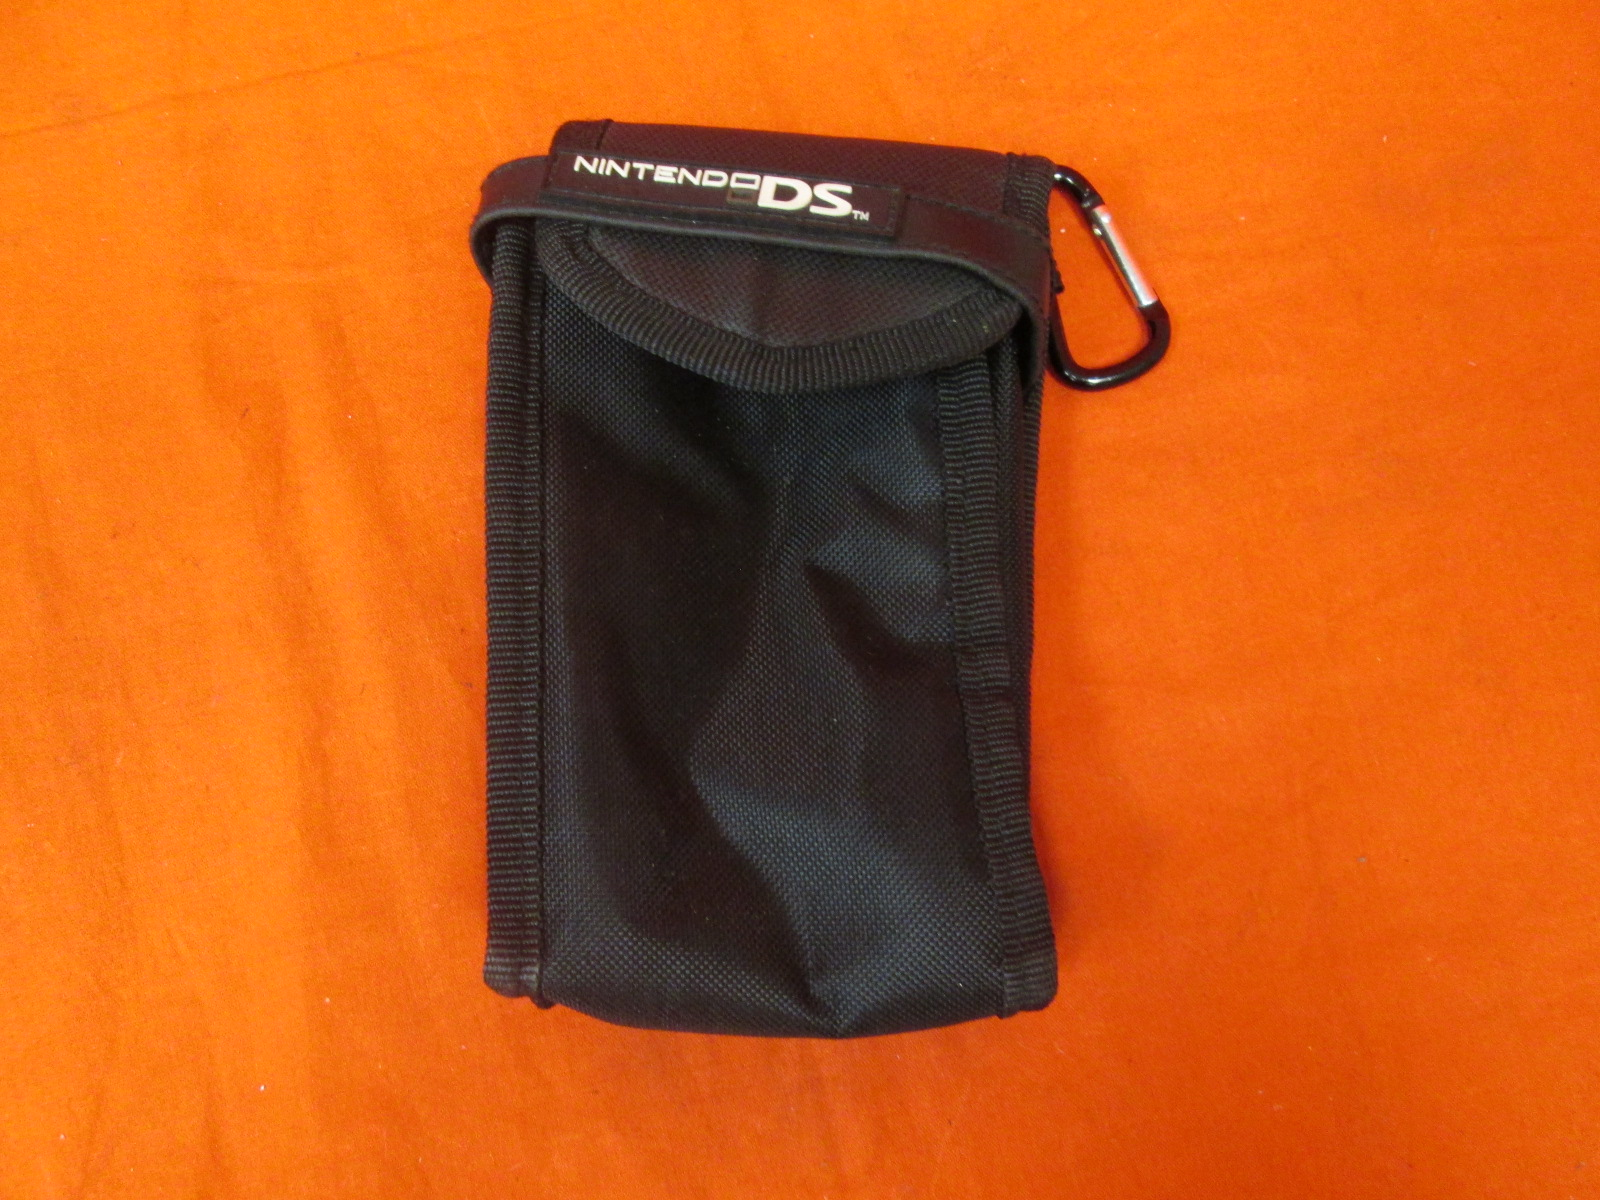 Black Travel Case For Nintendo DS Handheld Console Games And